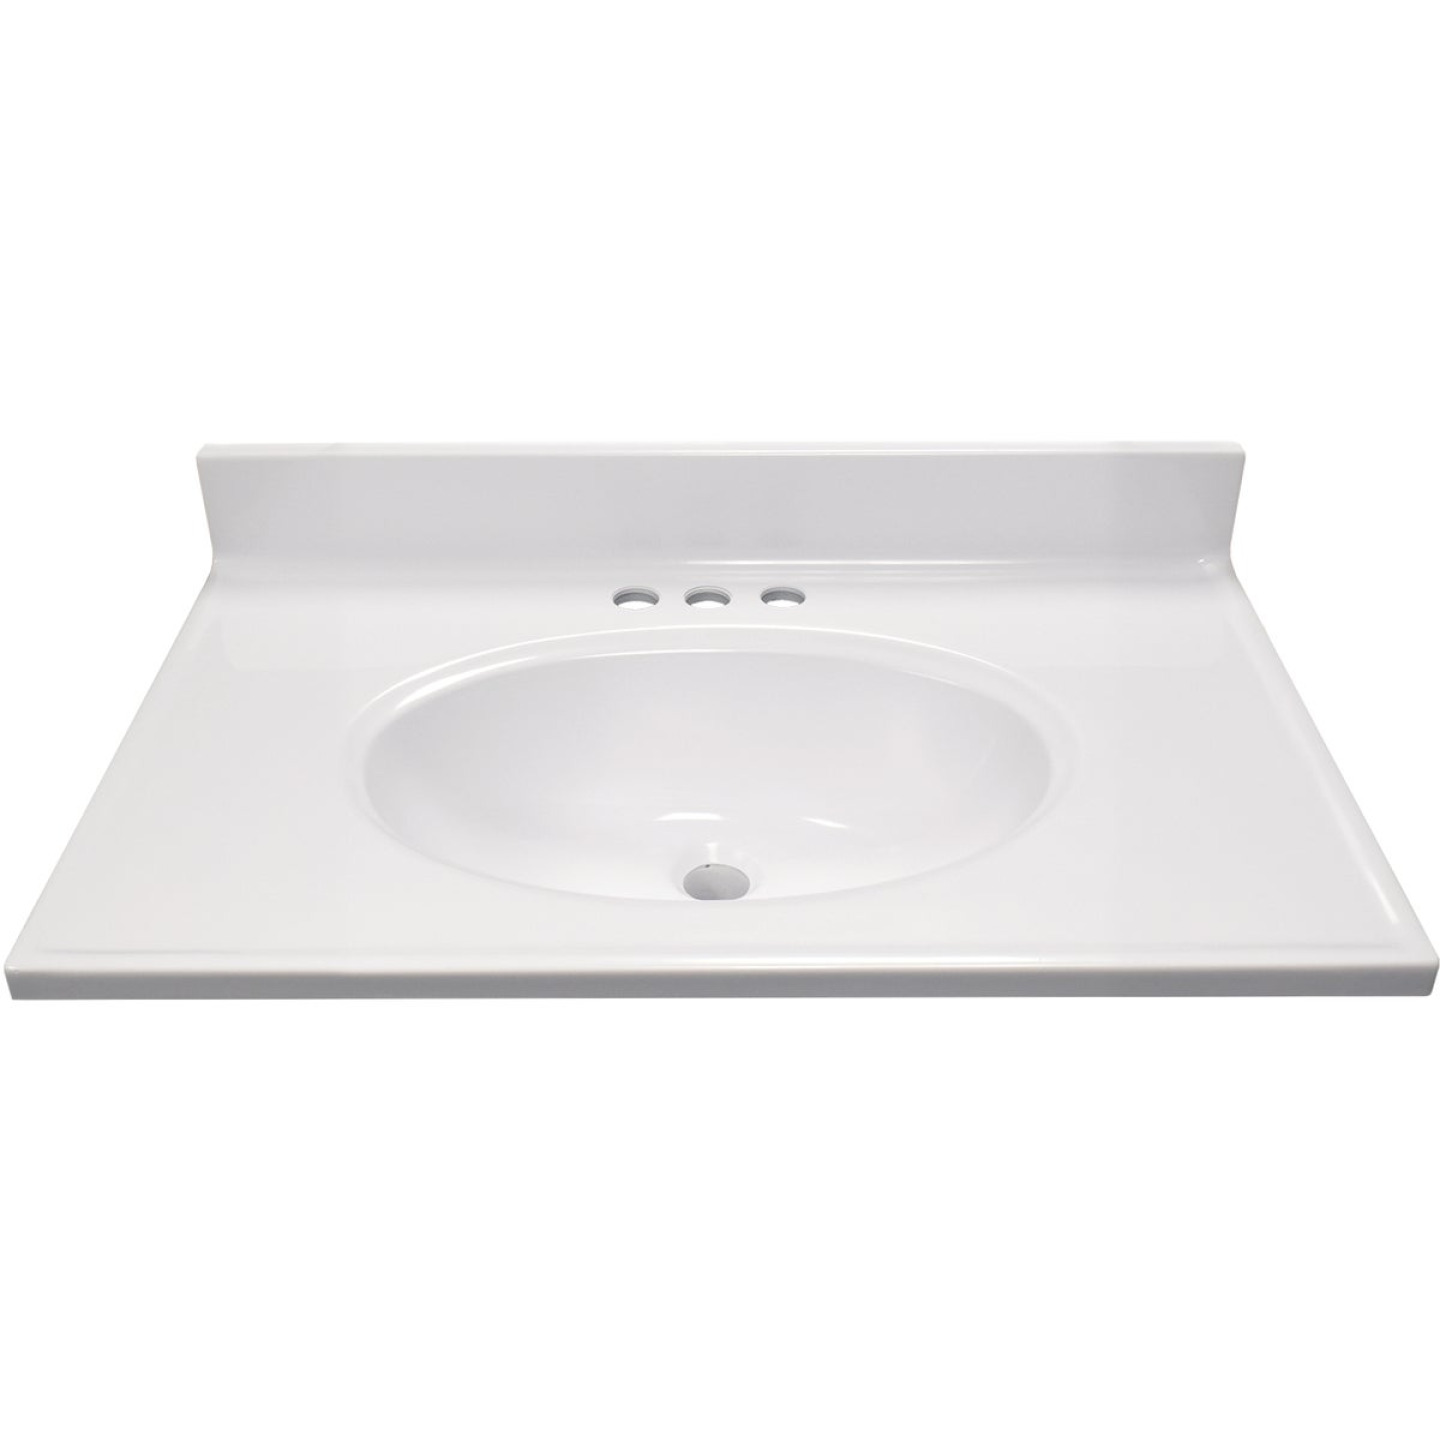 Modular Vanity Tops 31 In. W x 19 In. D Solid White Cultured Marble Non-Drip Edge Vanity Top with Oval Bowl Image 2